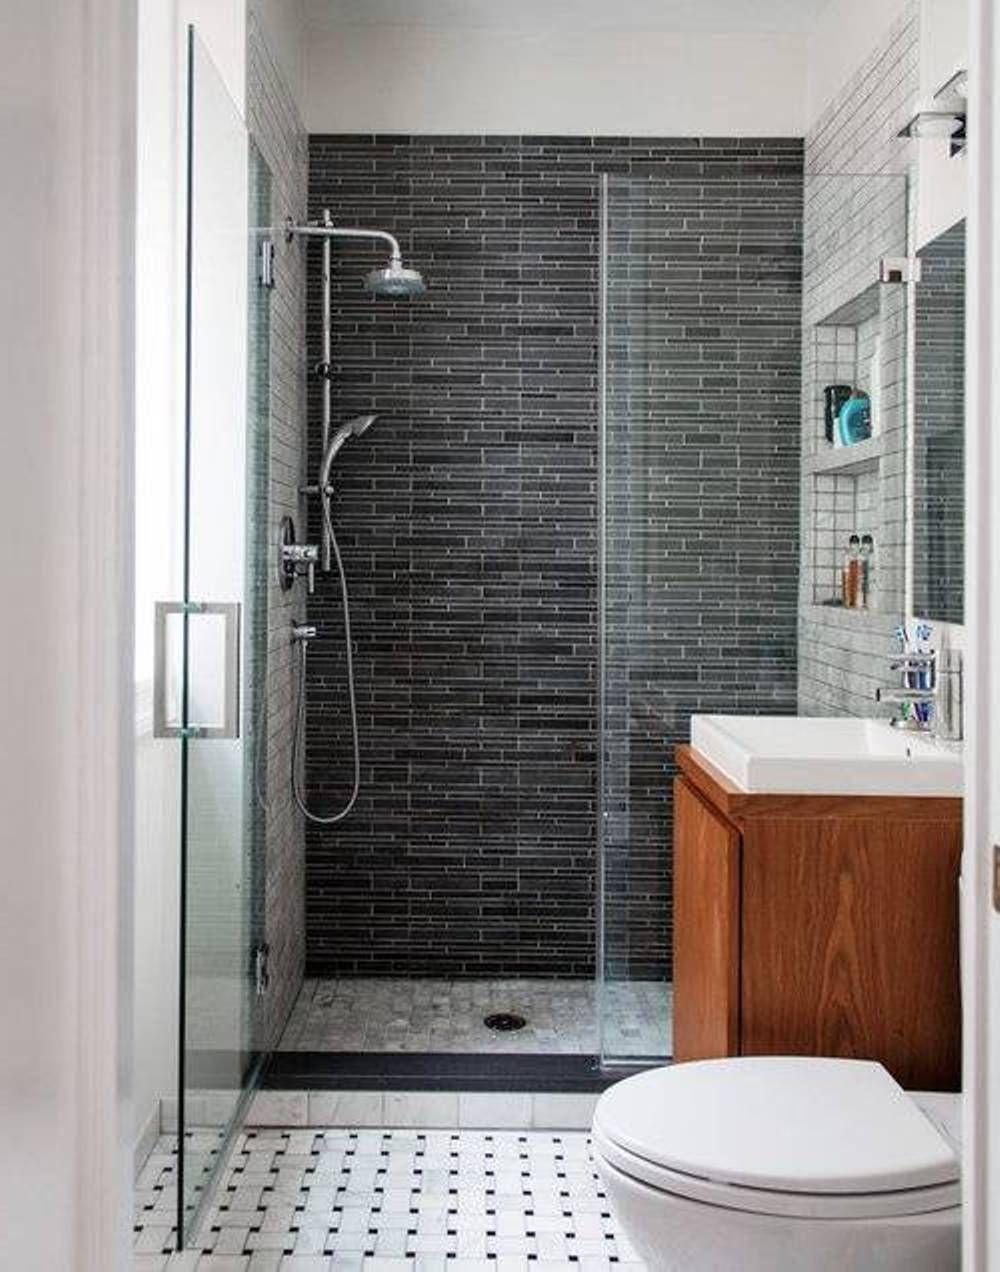 30 Best Small Bathroom Ideas Cheap Bathroom Remodel Small Bathroom Remodel Simple Small Bathroom Designs